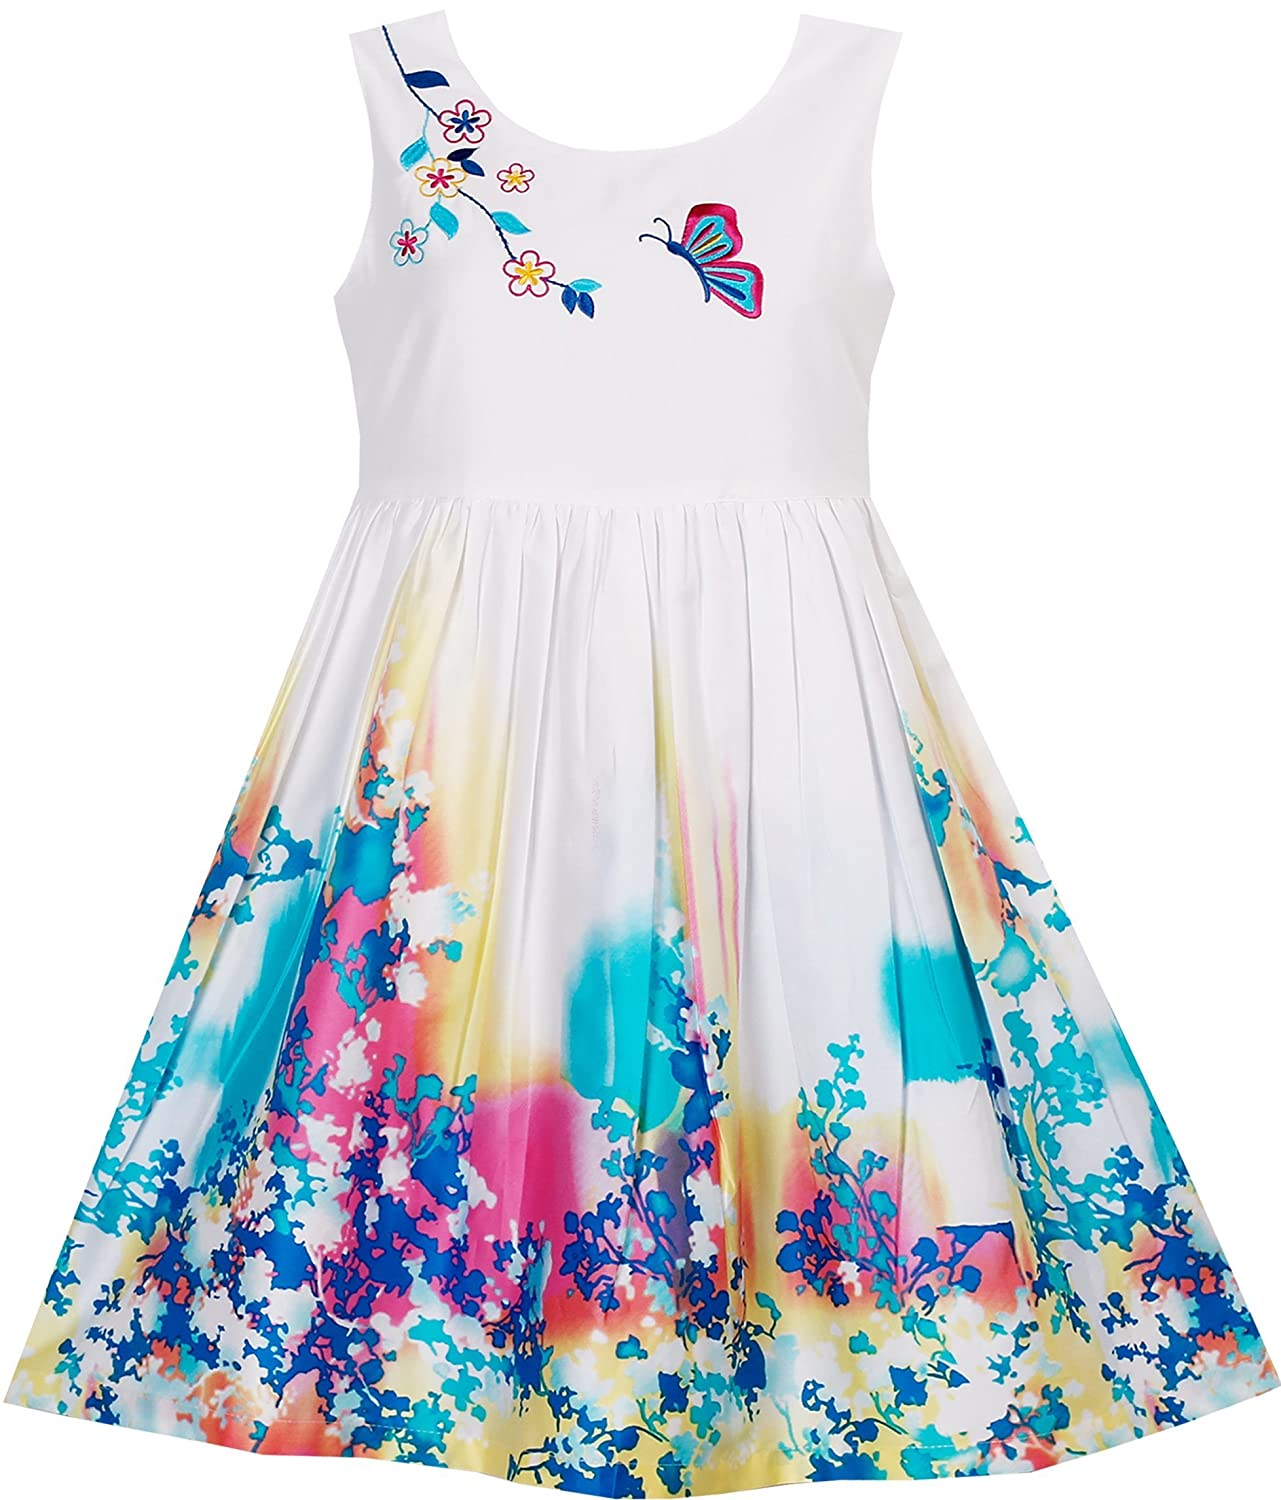 Sunny Fashion Girls Dress Butterfly Seeking Flower Embroidery Chinese Style